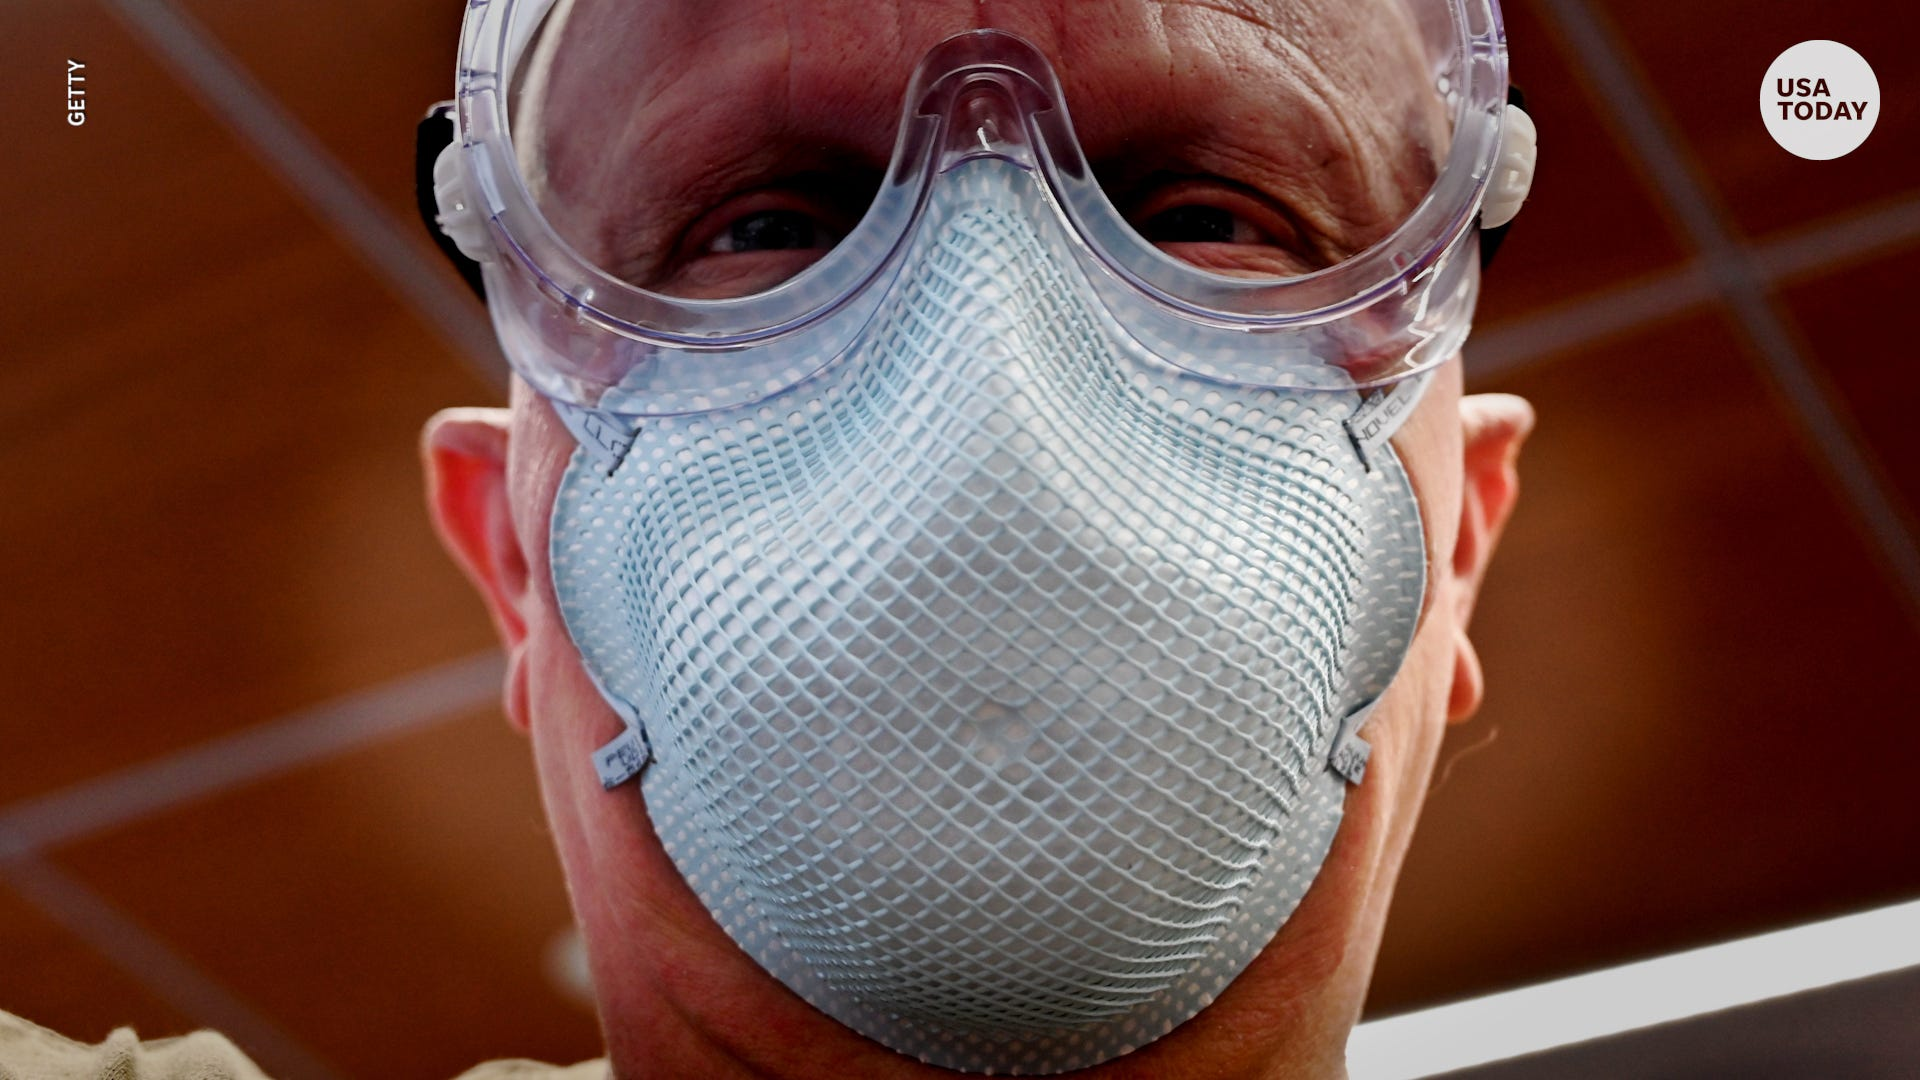 Coronavirus gouging? Texas AG sues auctioneer for allegedly jacking up prices on 750,000 face masks